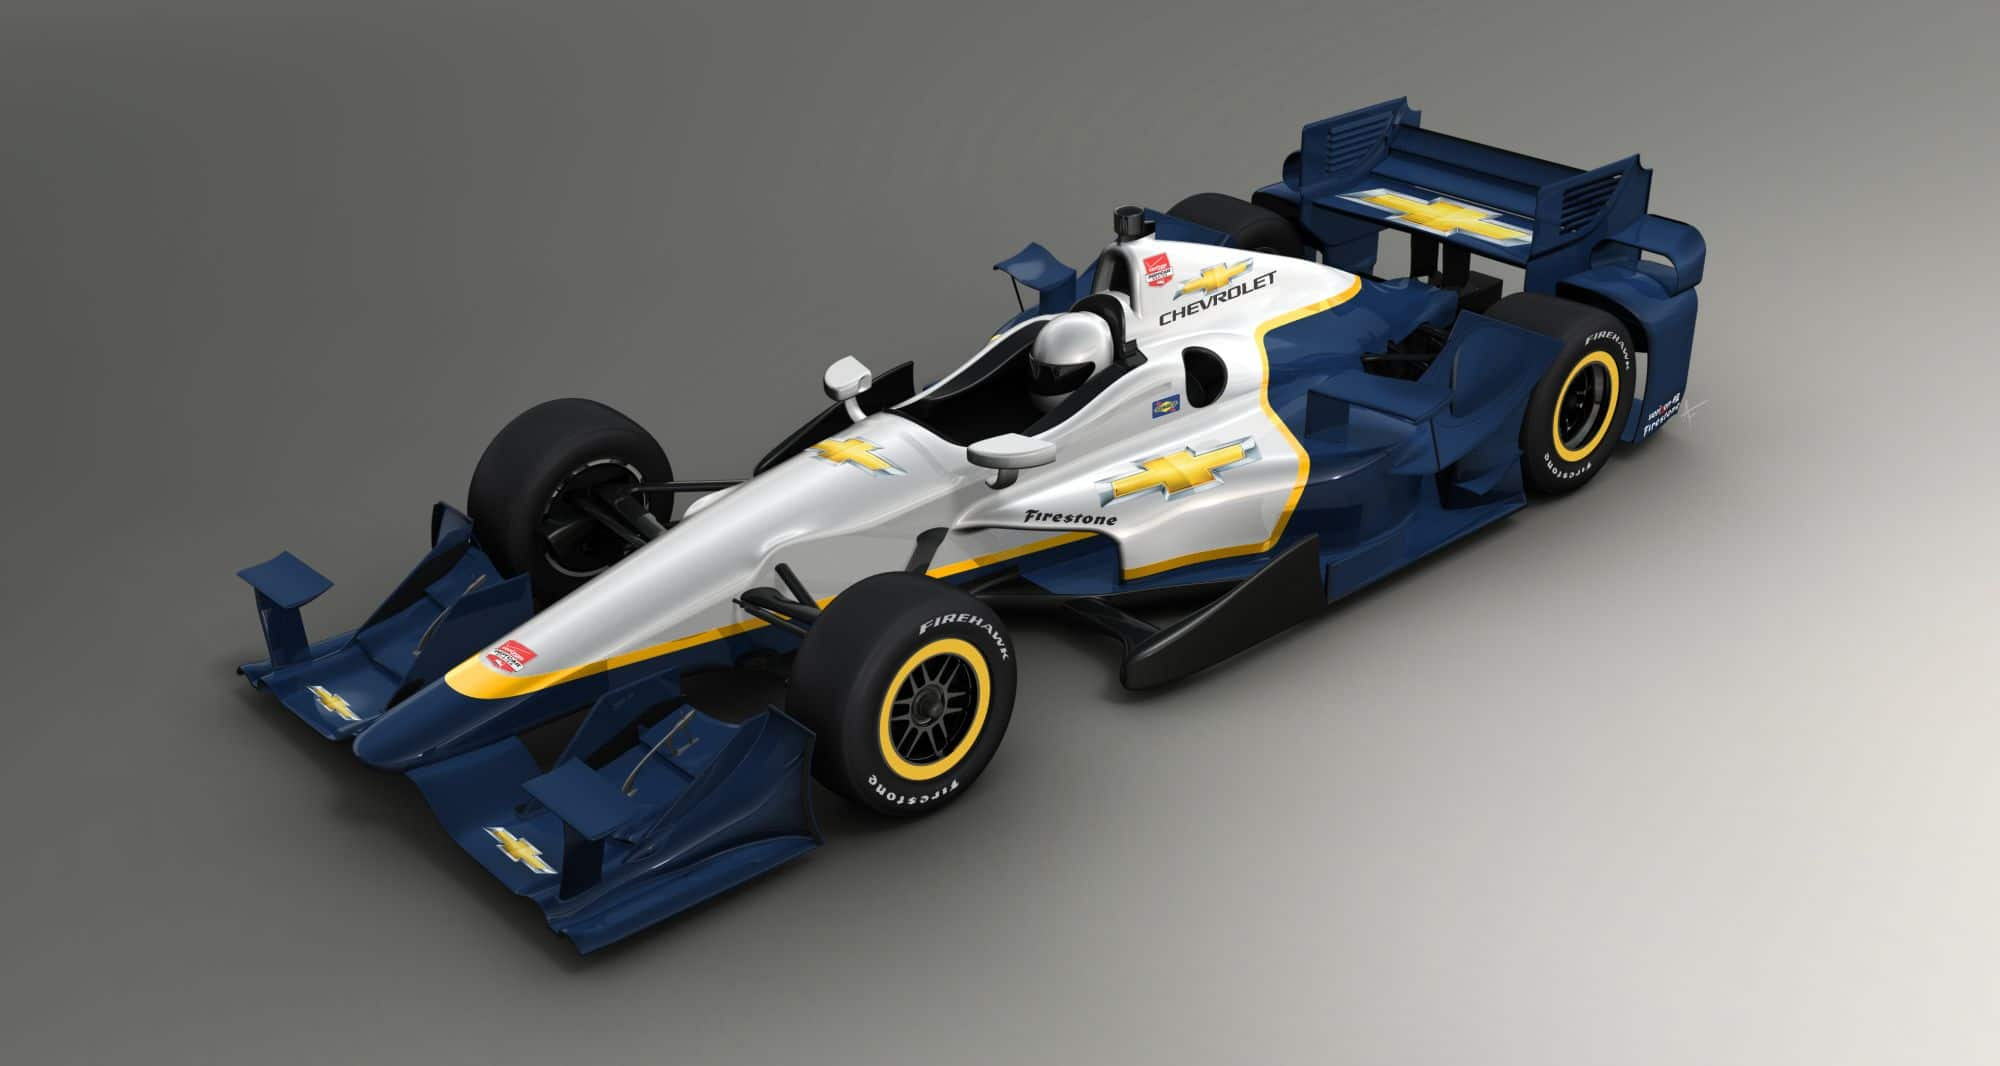 IndyCar 2015 Chevrolet Aero Kit for road and street top view Courtesy IndyCar media